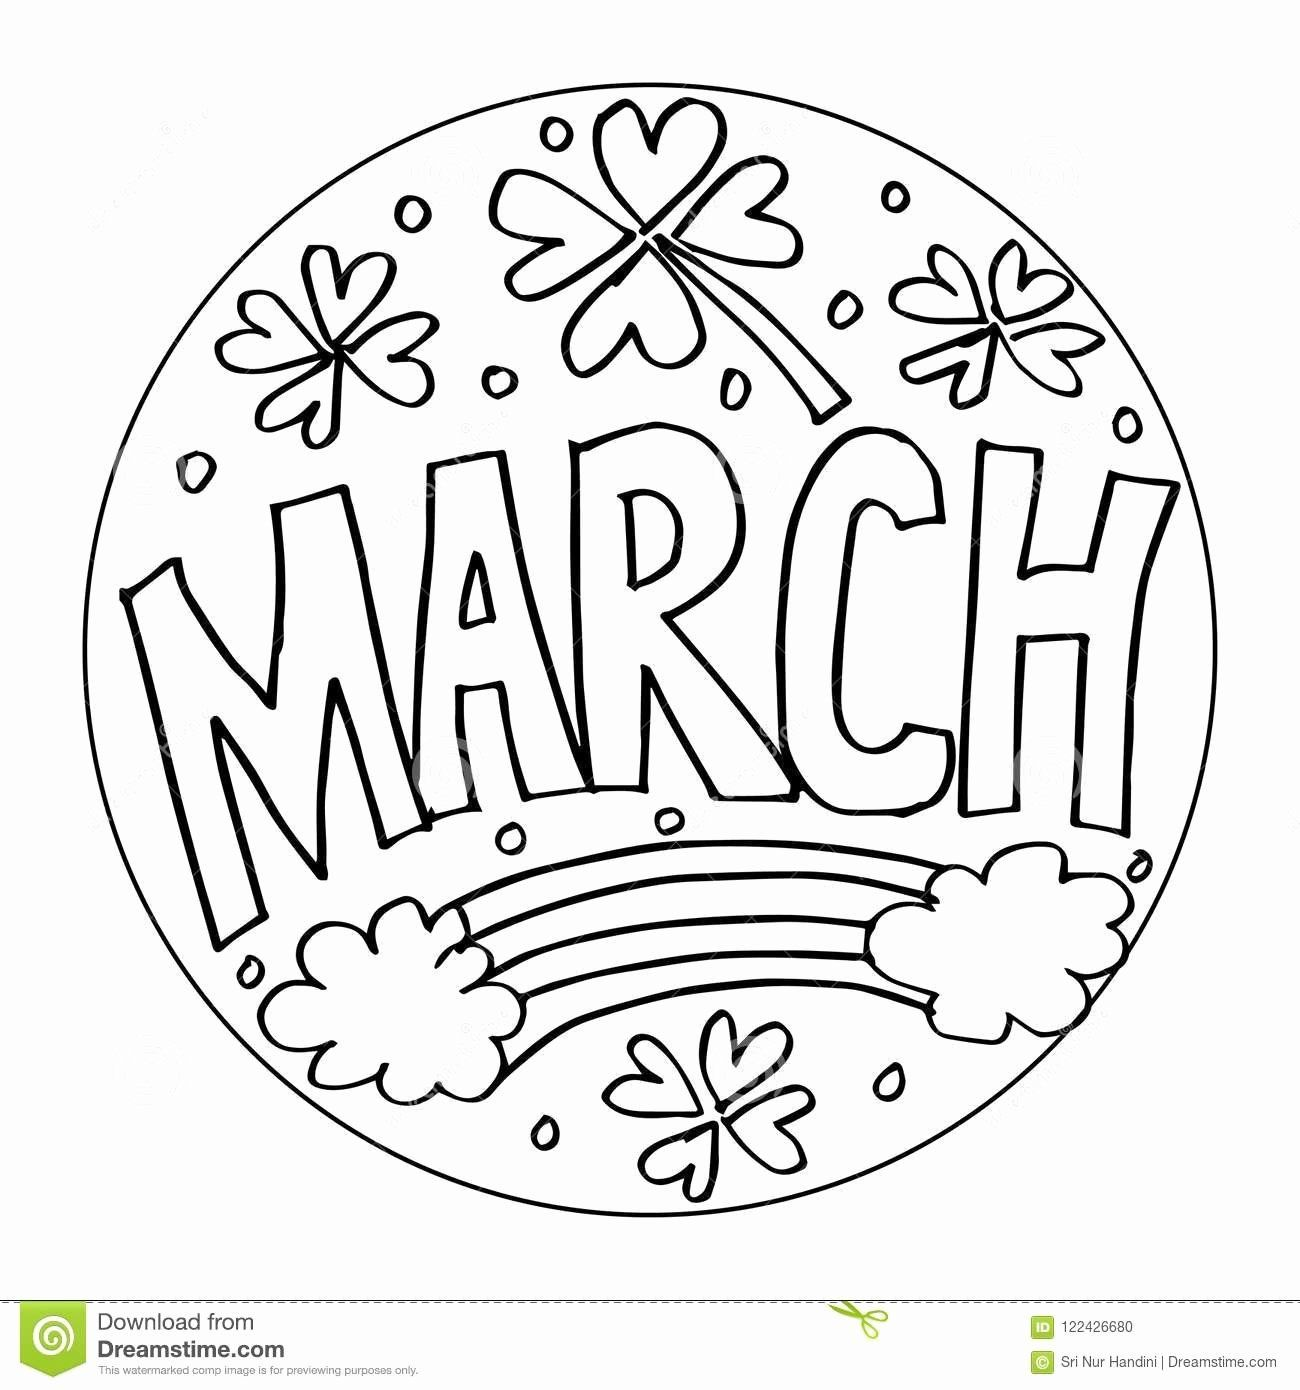 March Coloring Pages Printable Unique March Coloring Pages